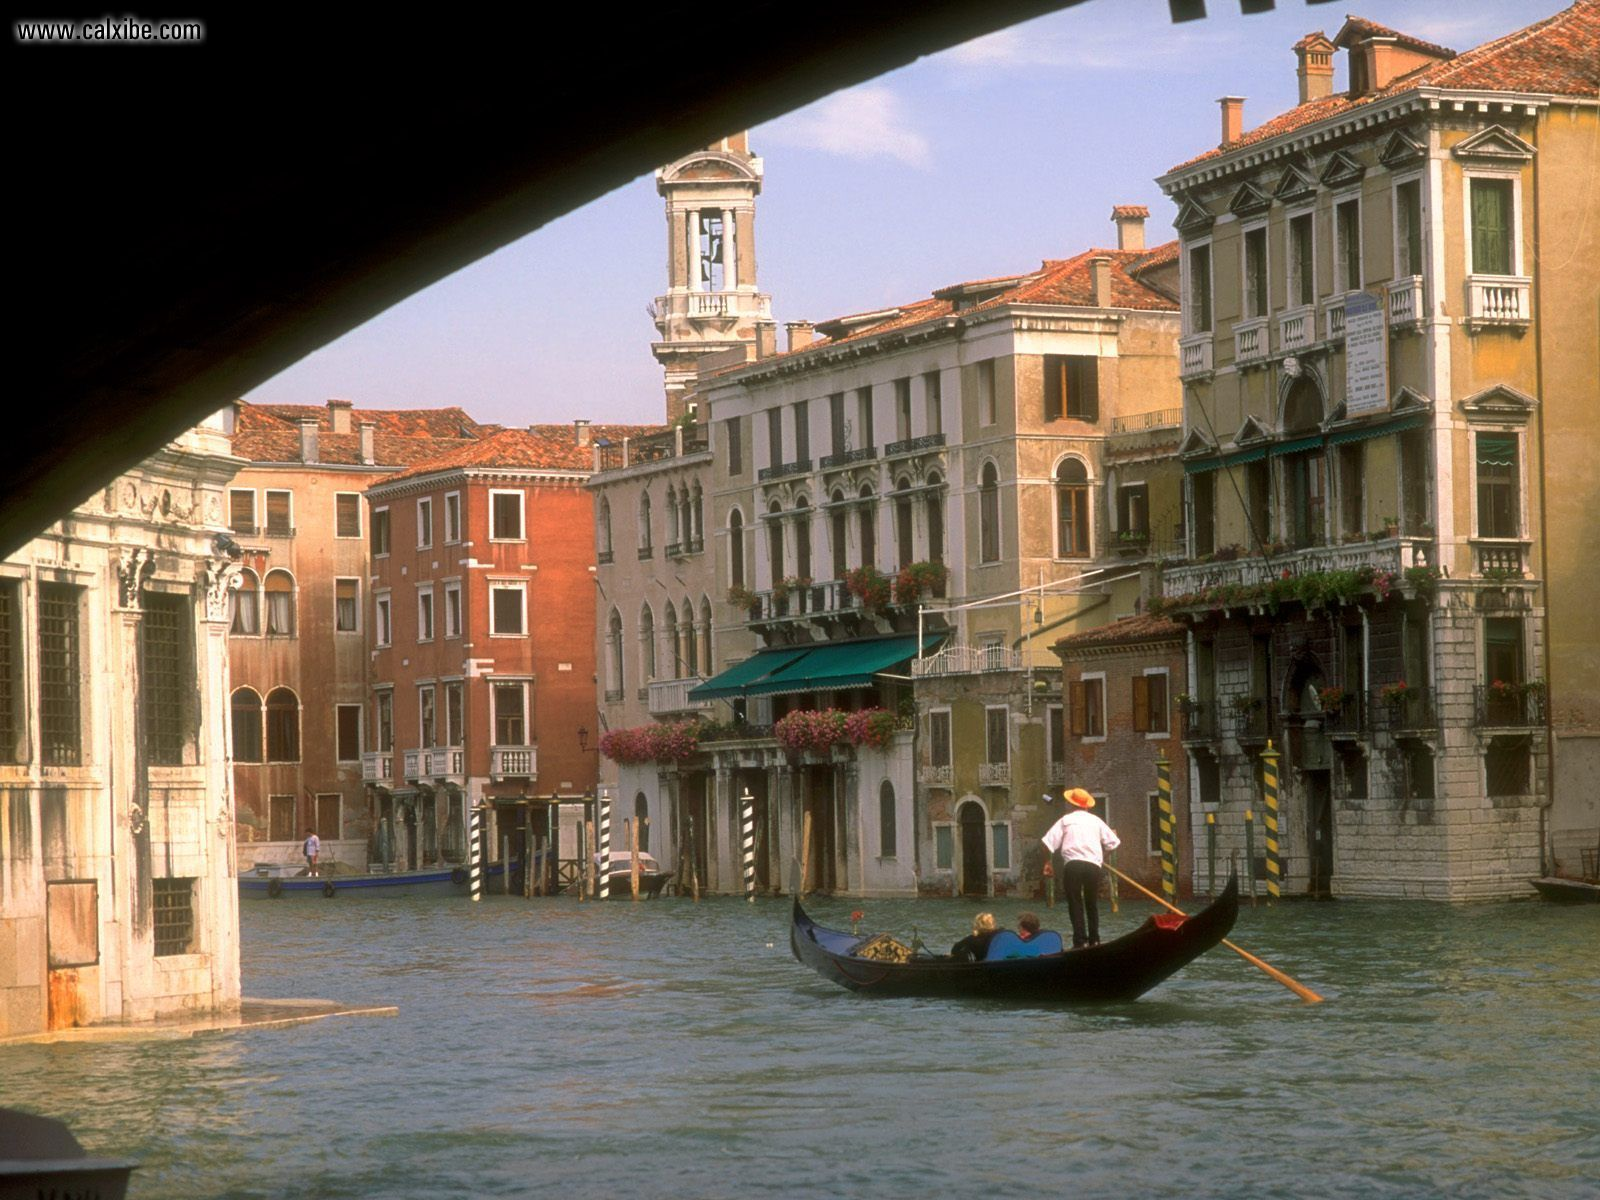 Known places Canals of Venice Italy picture nr 4128 1600x1200